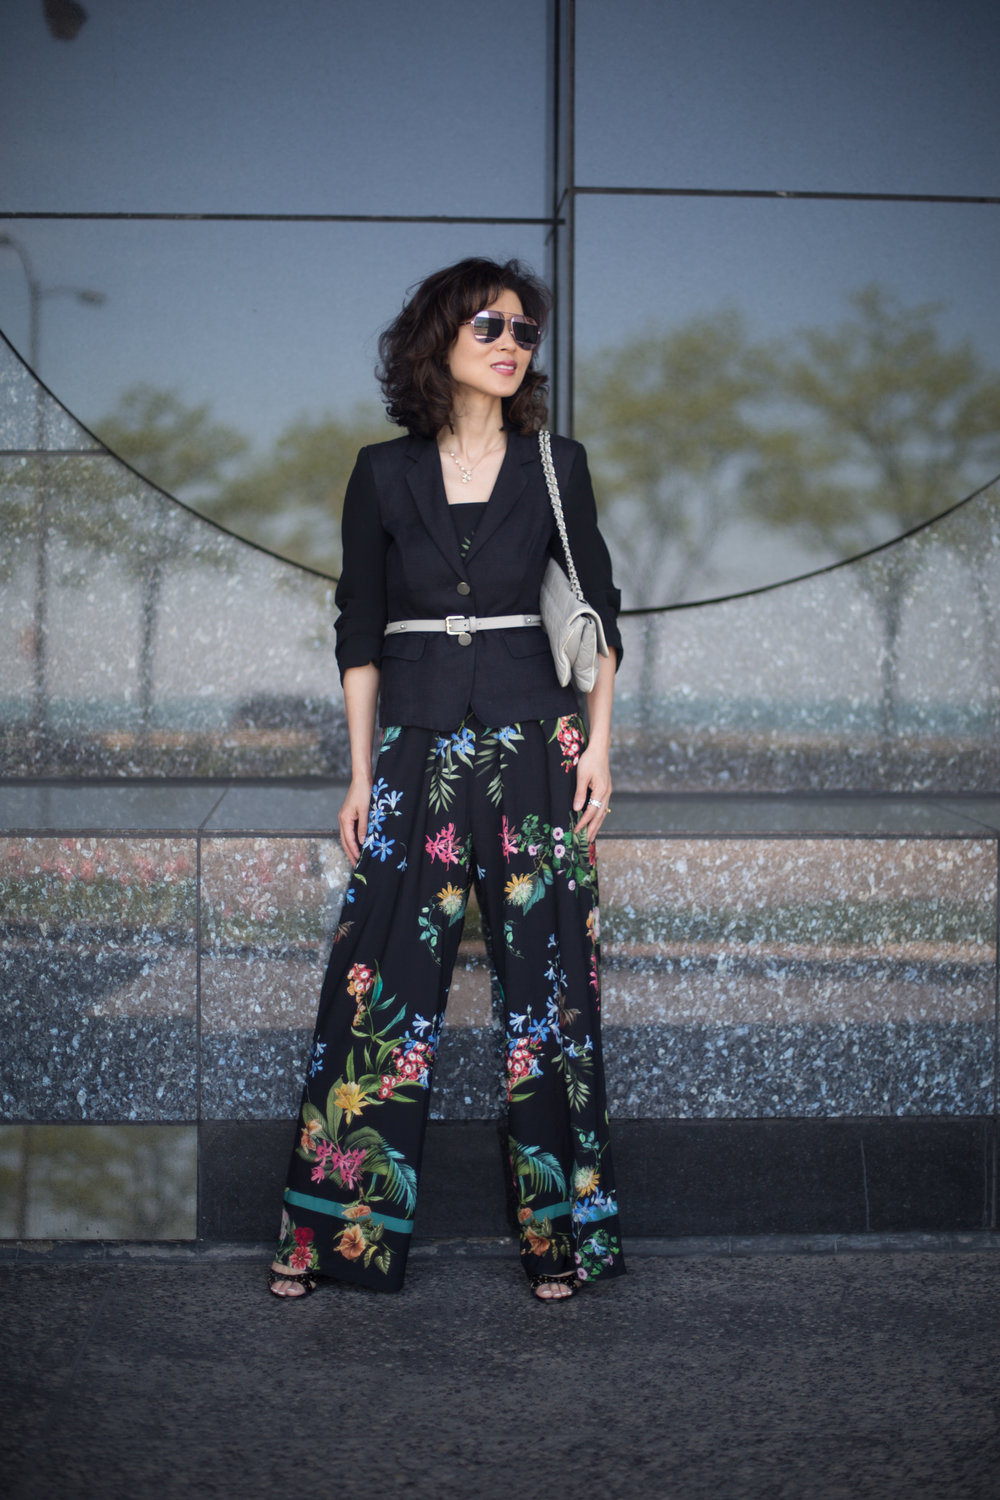 Shop my look and similar items here//: Straw Hat//Wool Jacket//Belt//Floral print Jumpsuit//Sunglasses//Sandals(similar)//